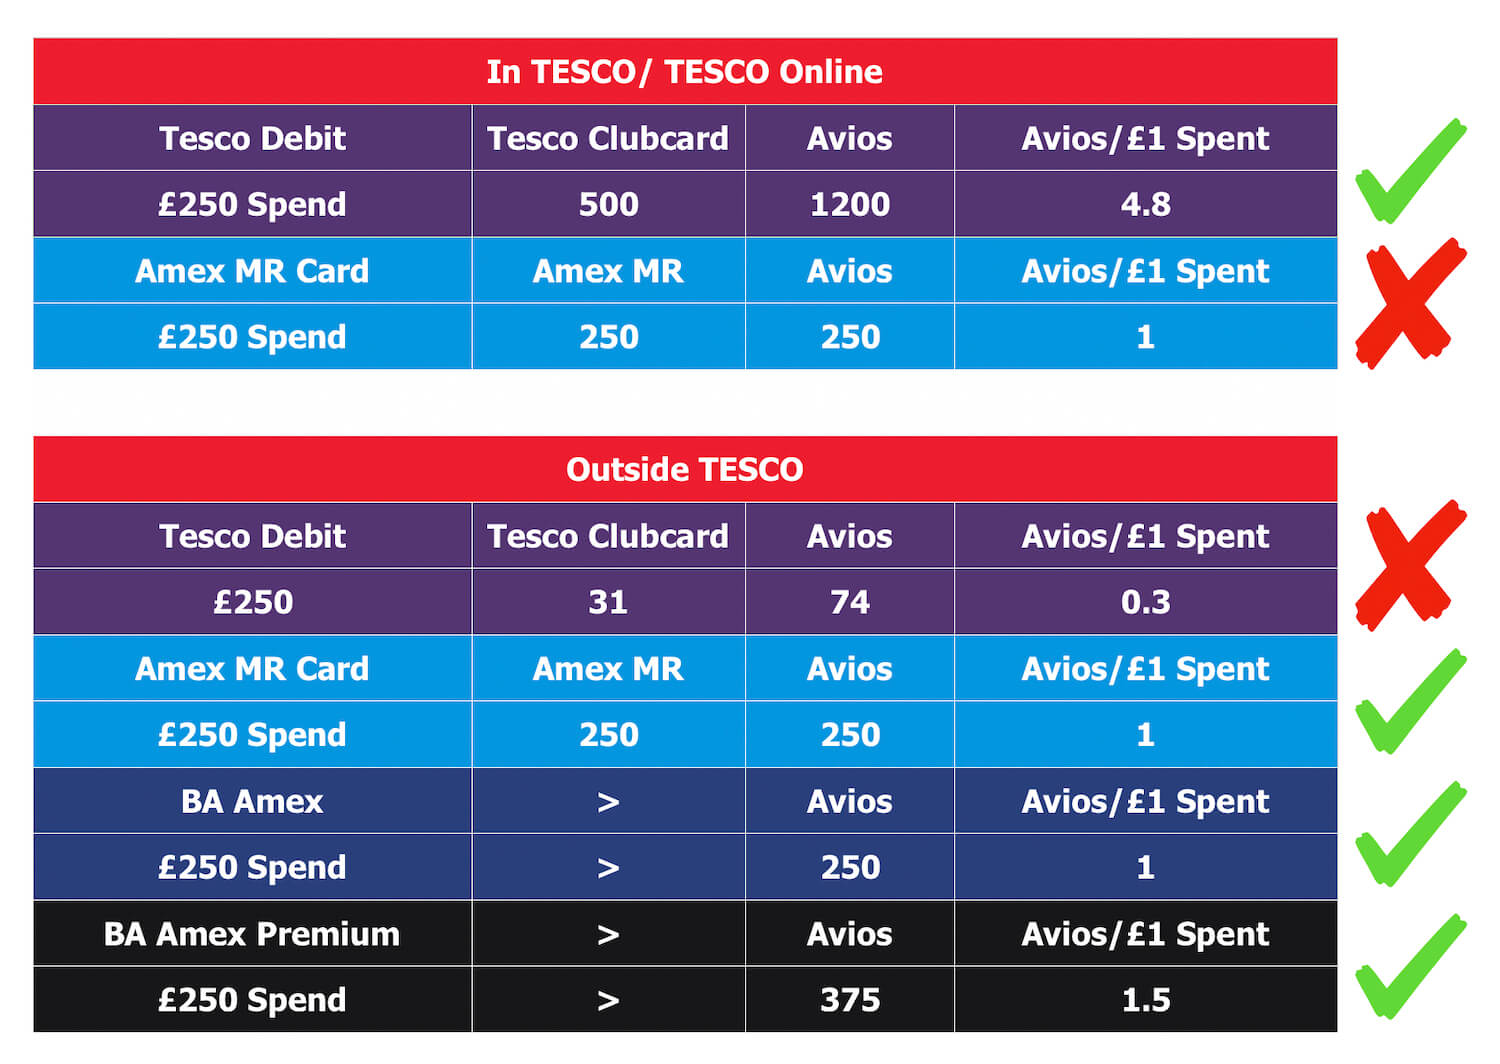 Maximise Avios with Tesco Clubcard and American Express - Guide Table (Inside vs Outside Tesco Spending)